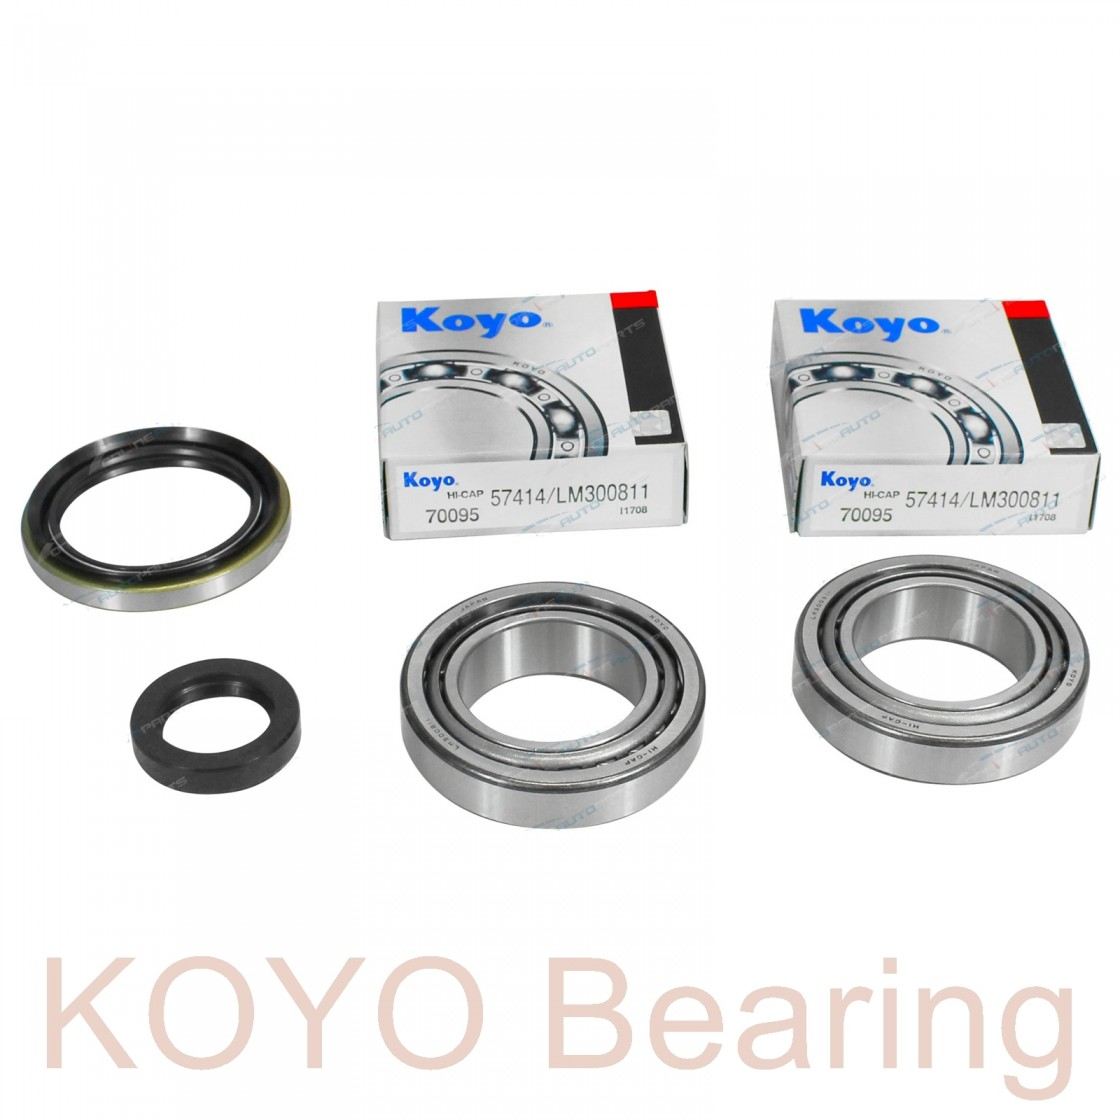 KOYO NK32/20 needle roller bearings